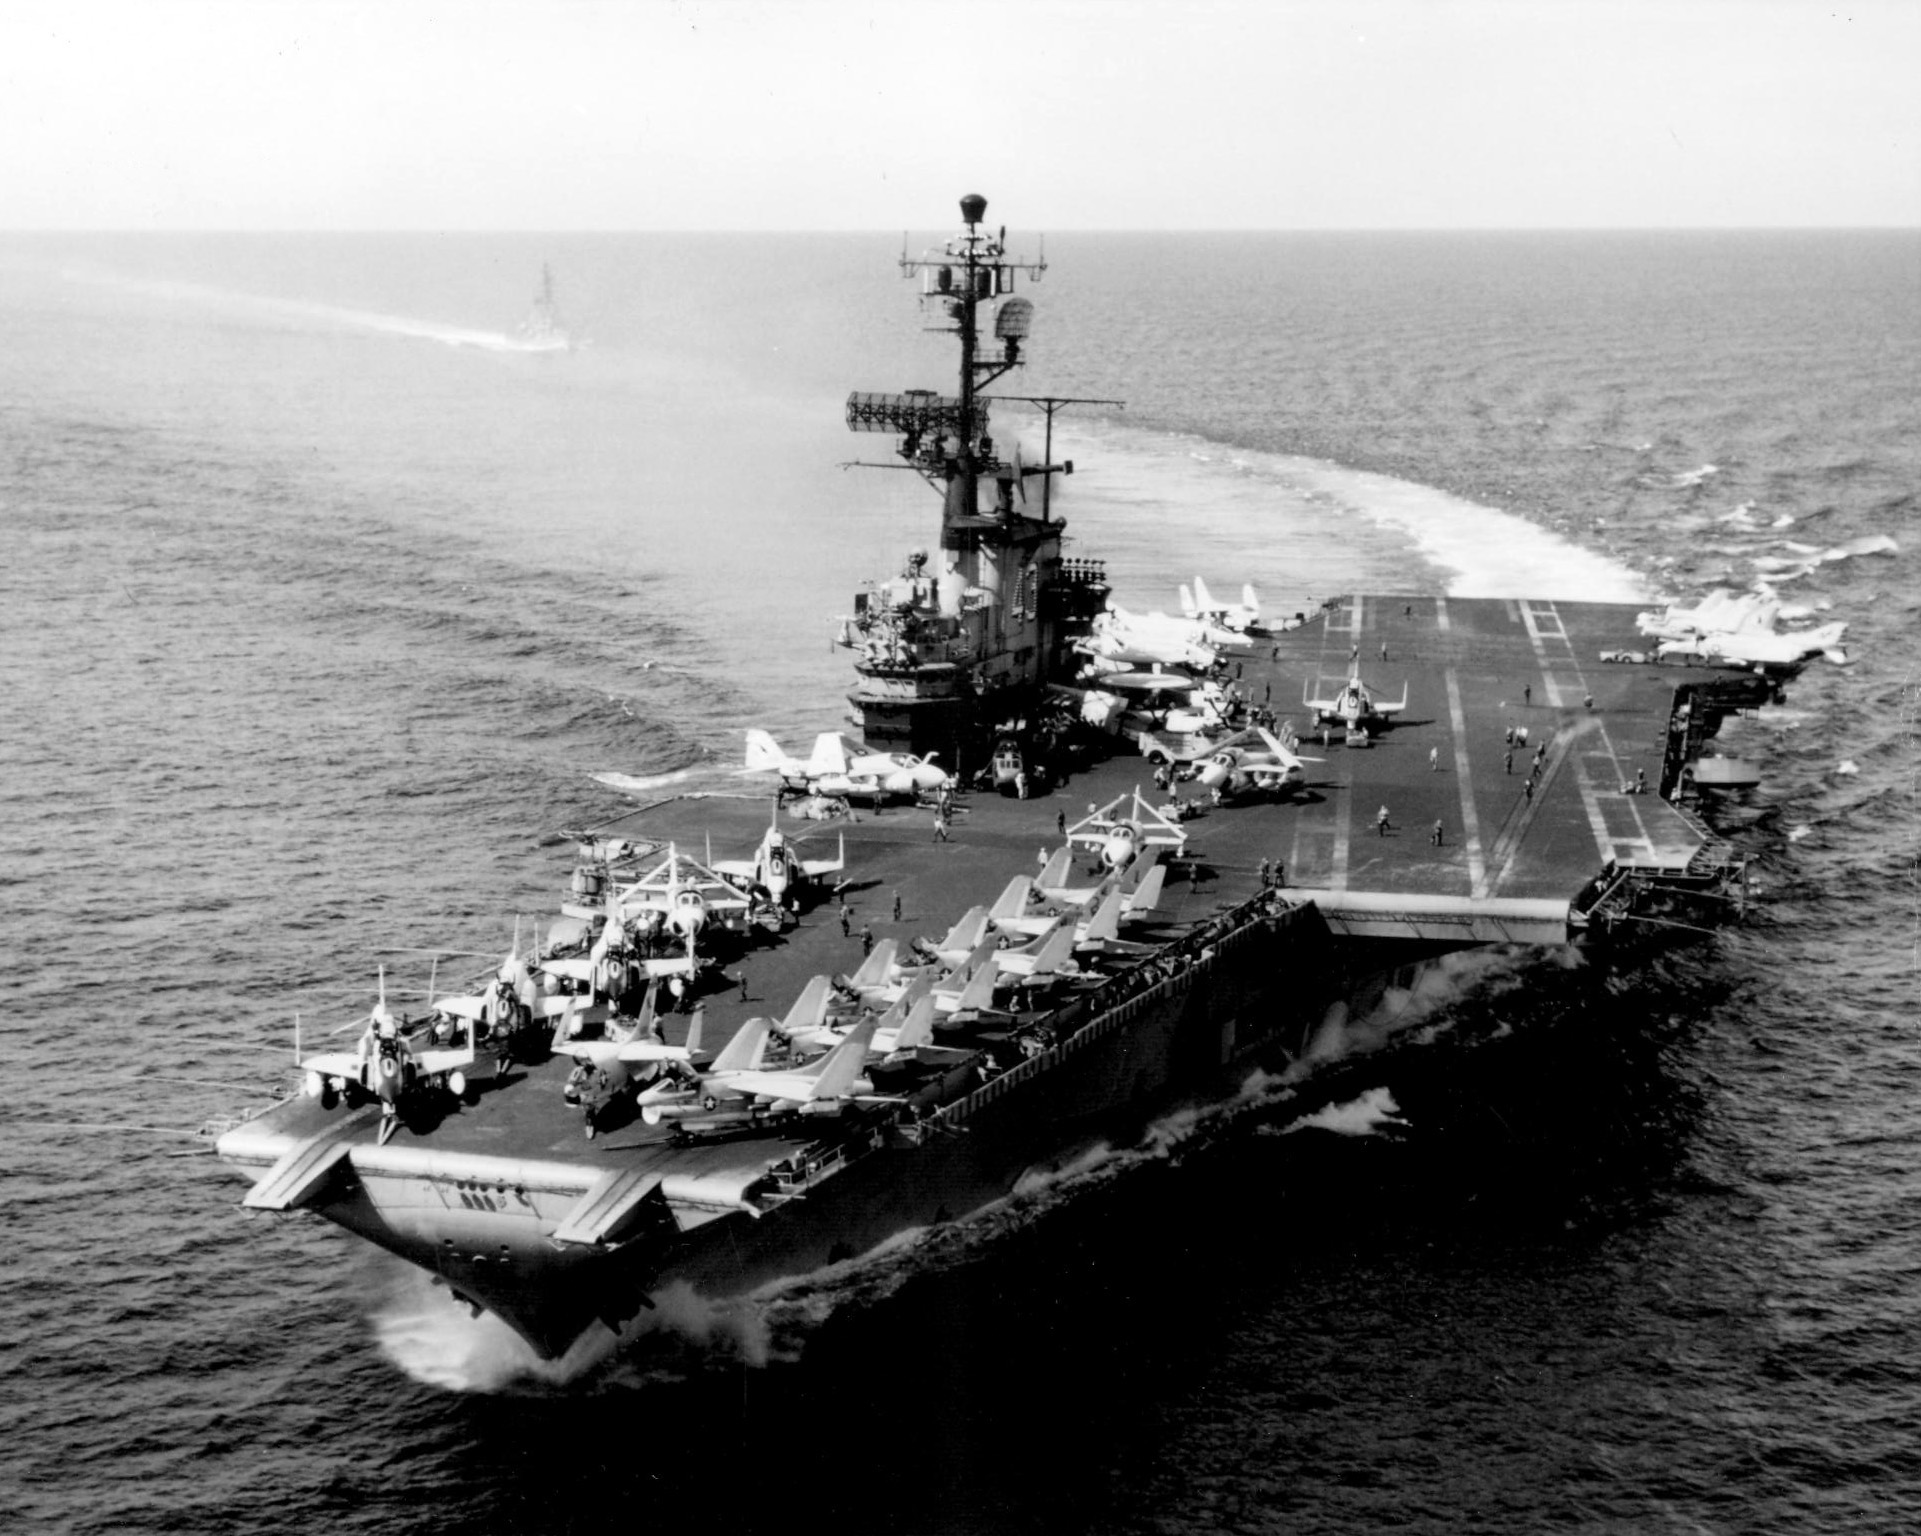 USS Coral Sea Tribute Site - Pictures 1970's - Page 1